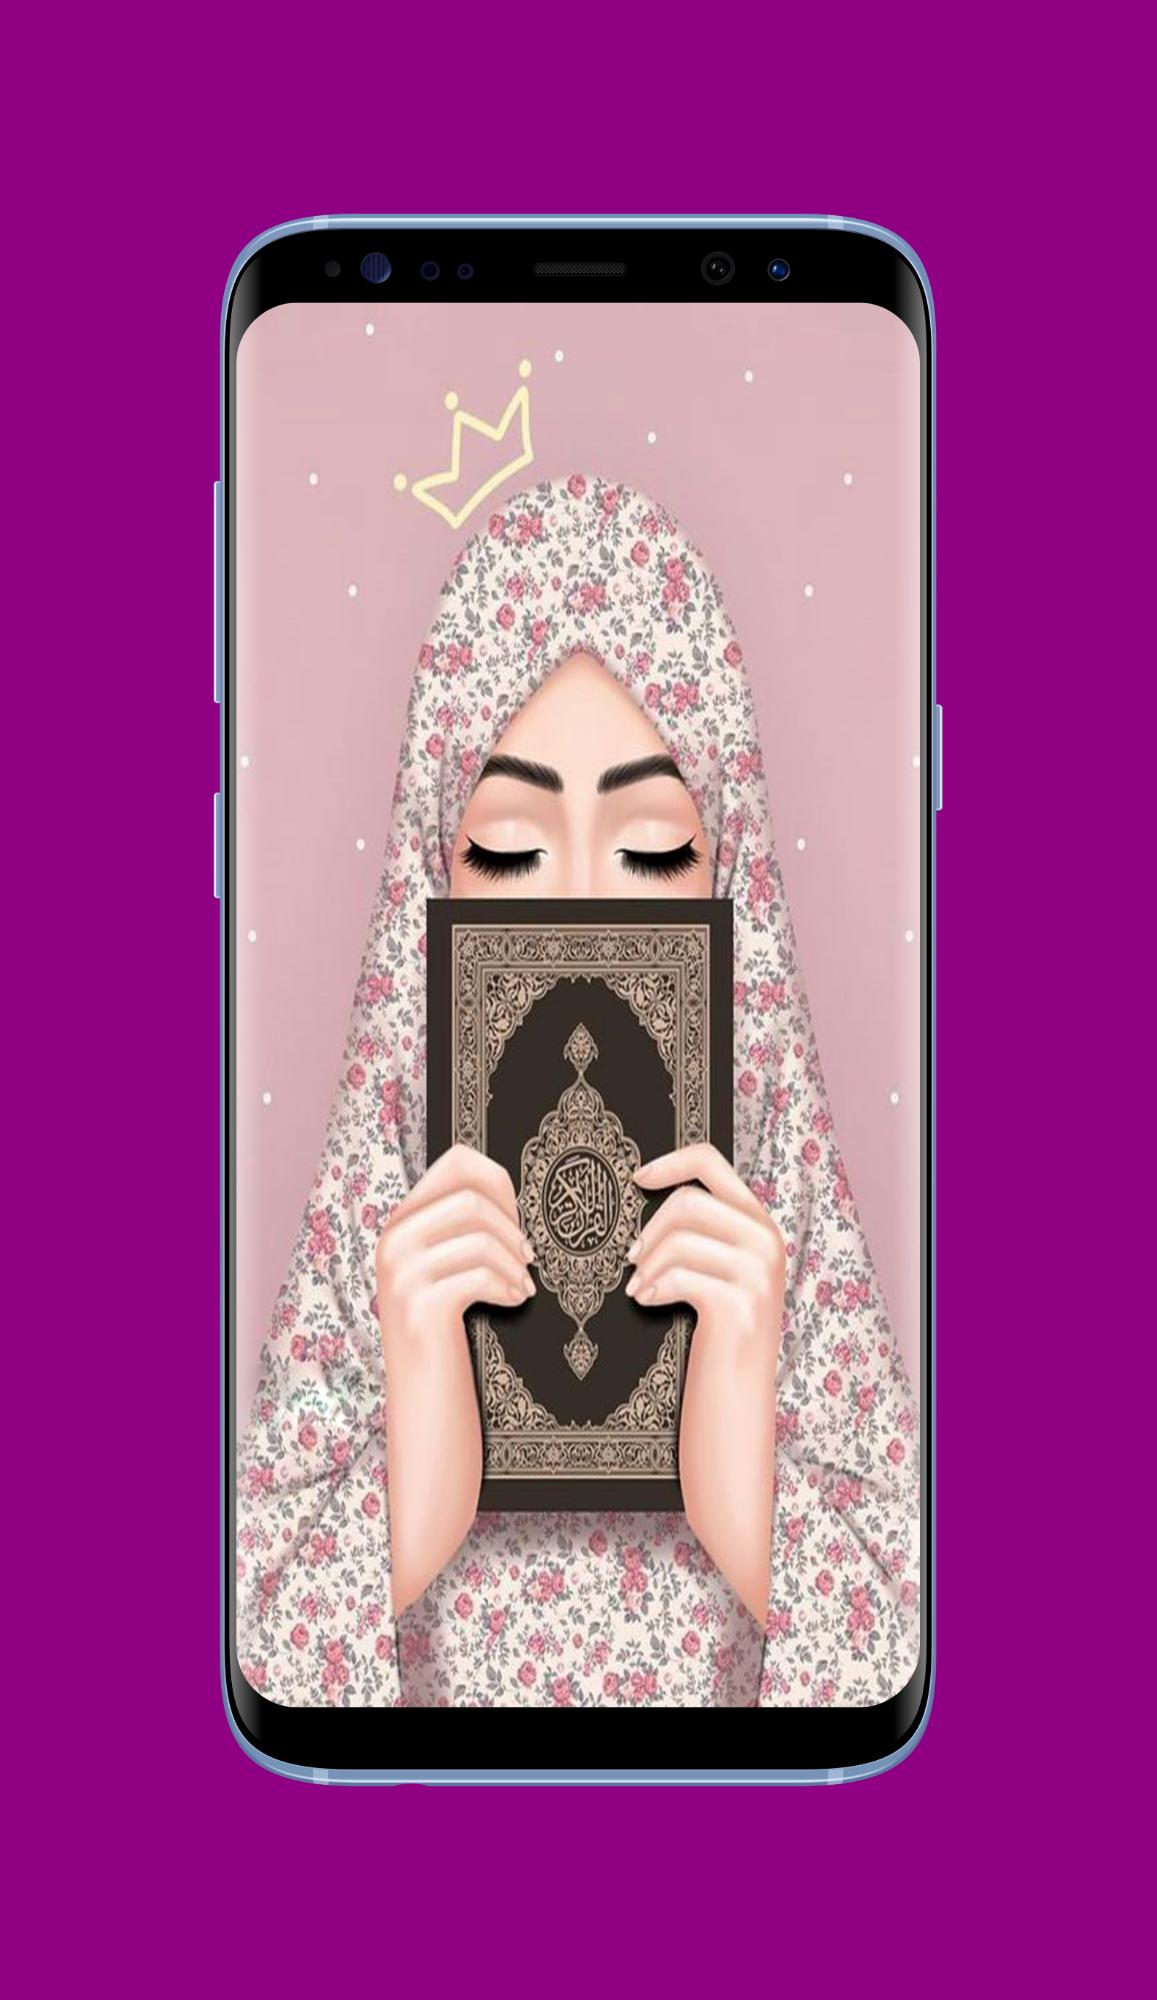 Girly Wallpaper Muslimah For Android APK Download